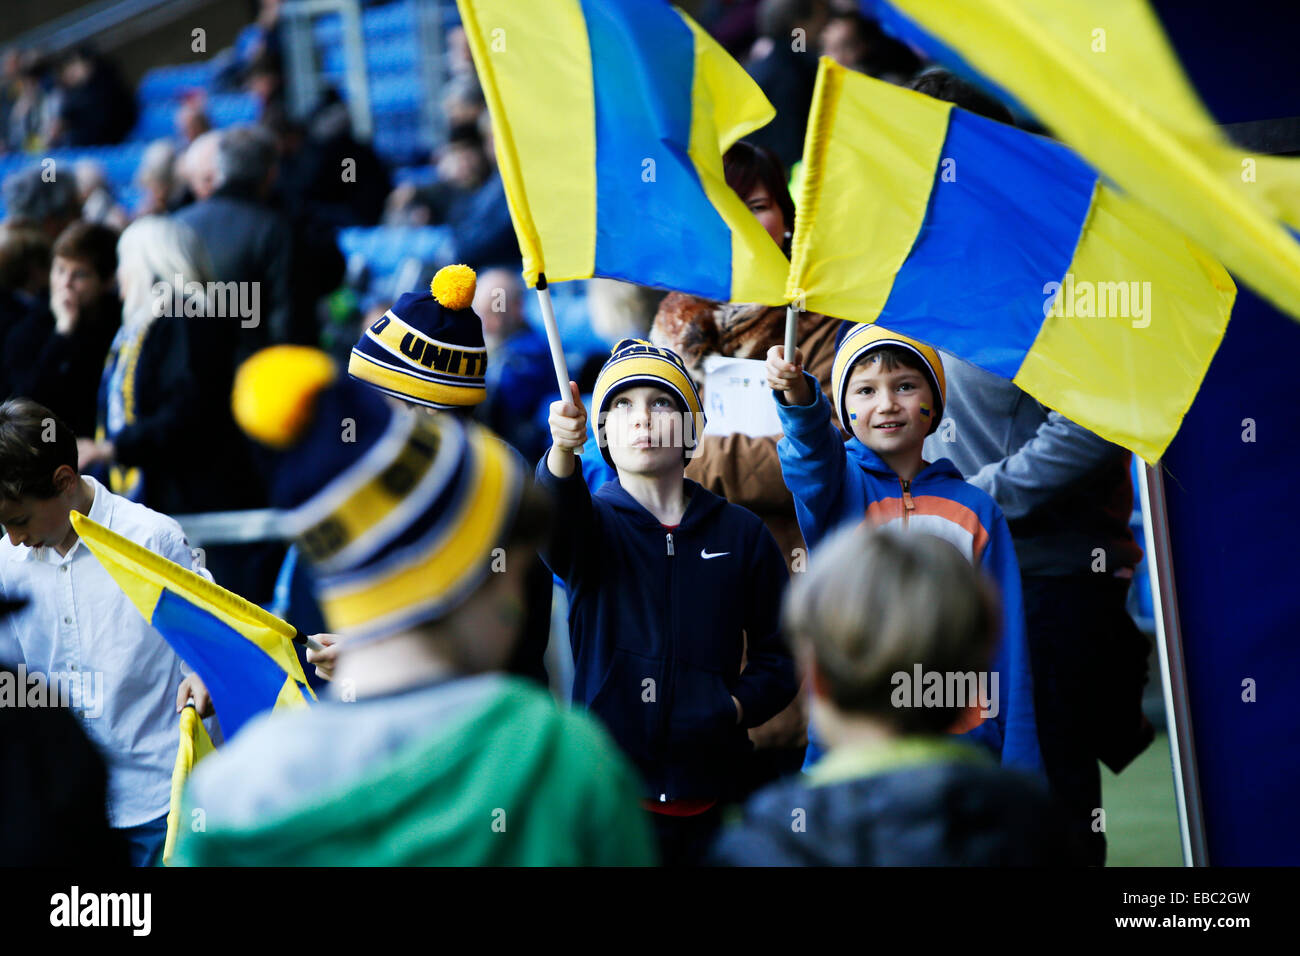 Kassam Stadium, Oxford Job name: sport Notes: FOOTBALL: Oxford United v AFC Wimbledon Pictured here is Oxford fans Stock Photo